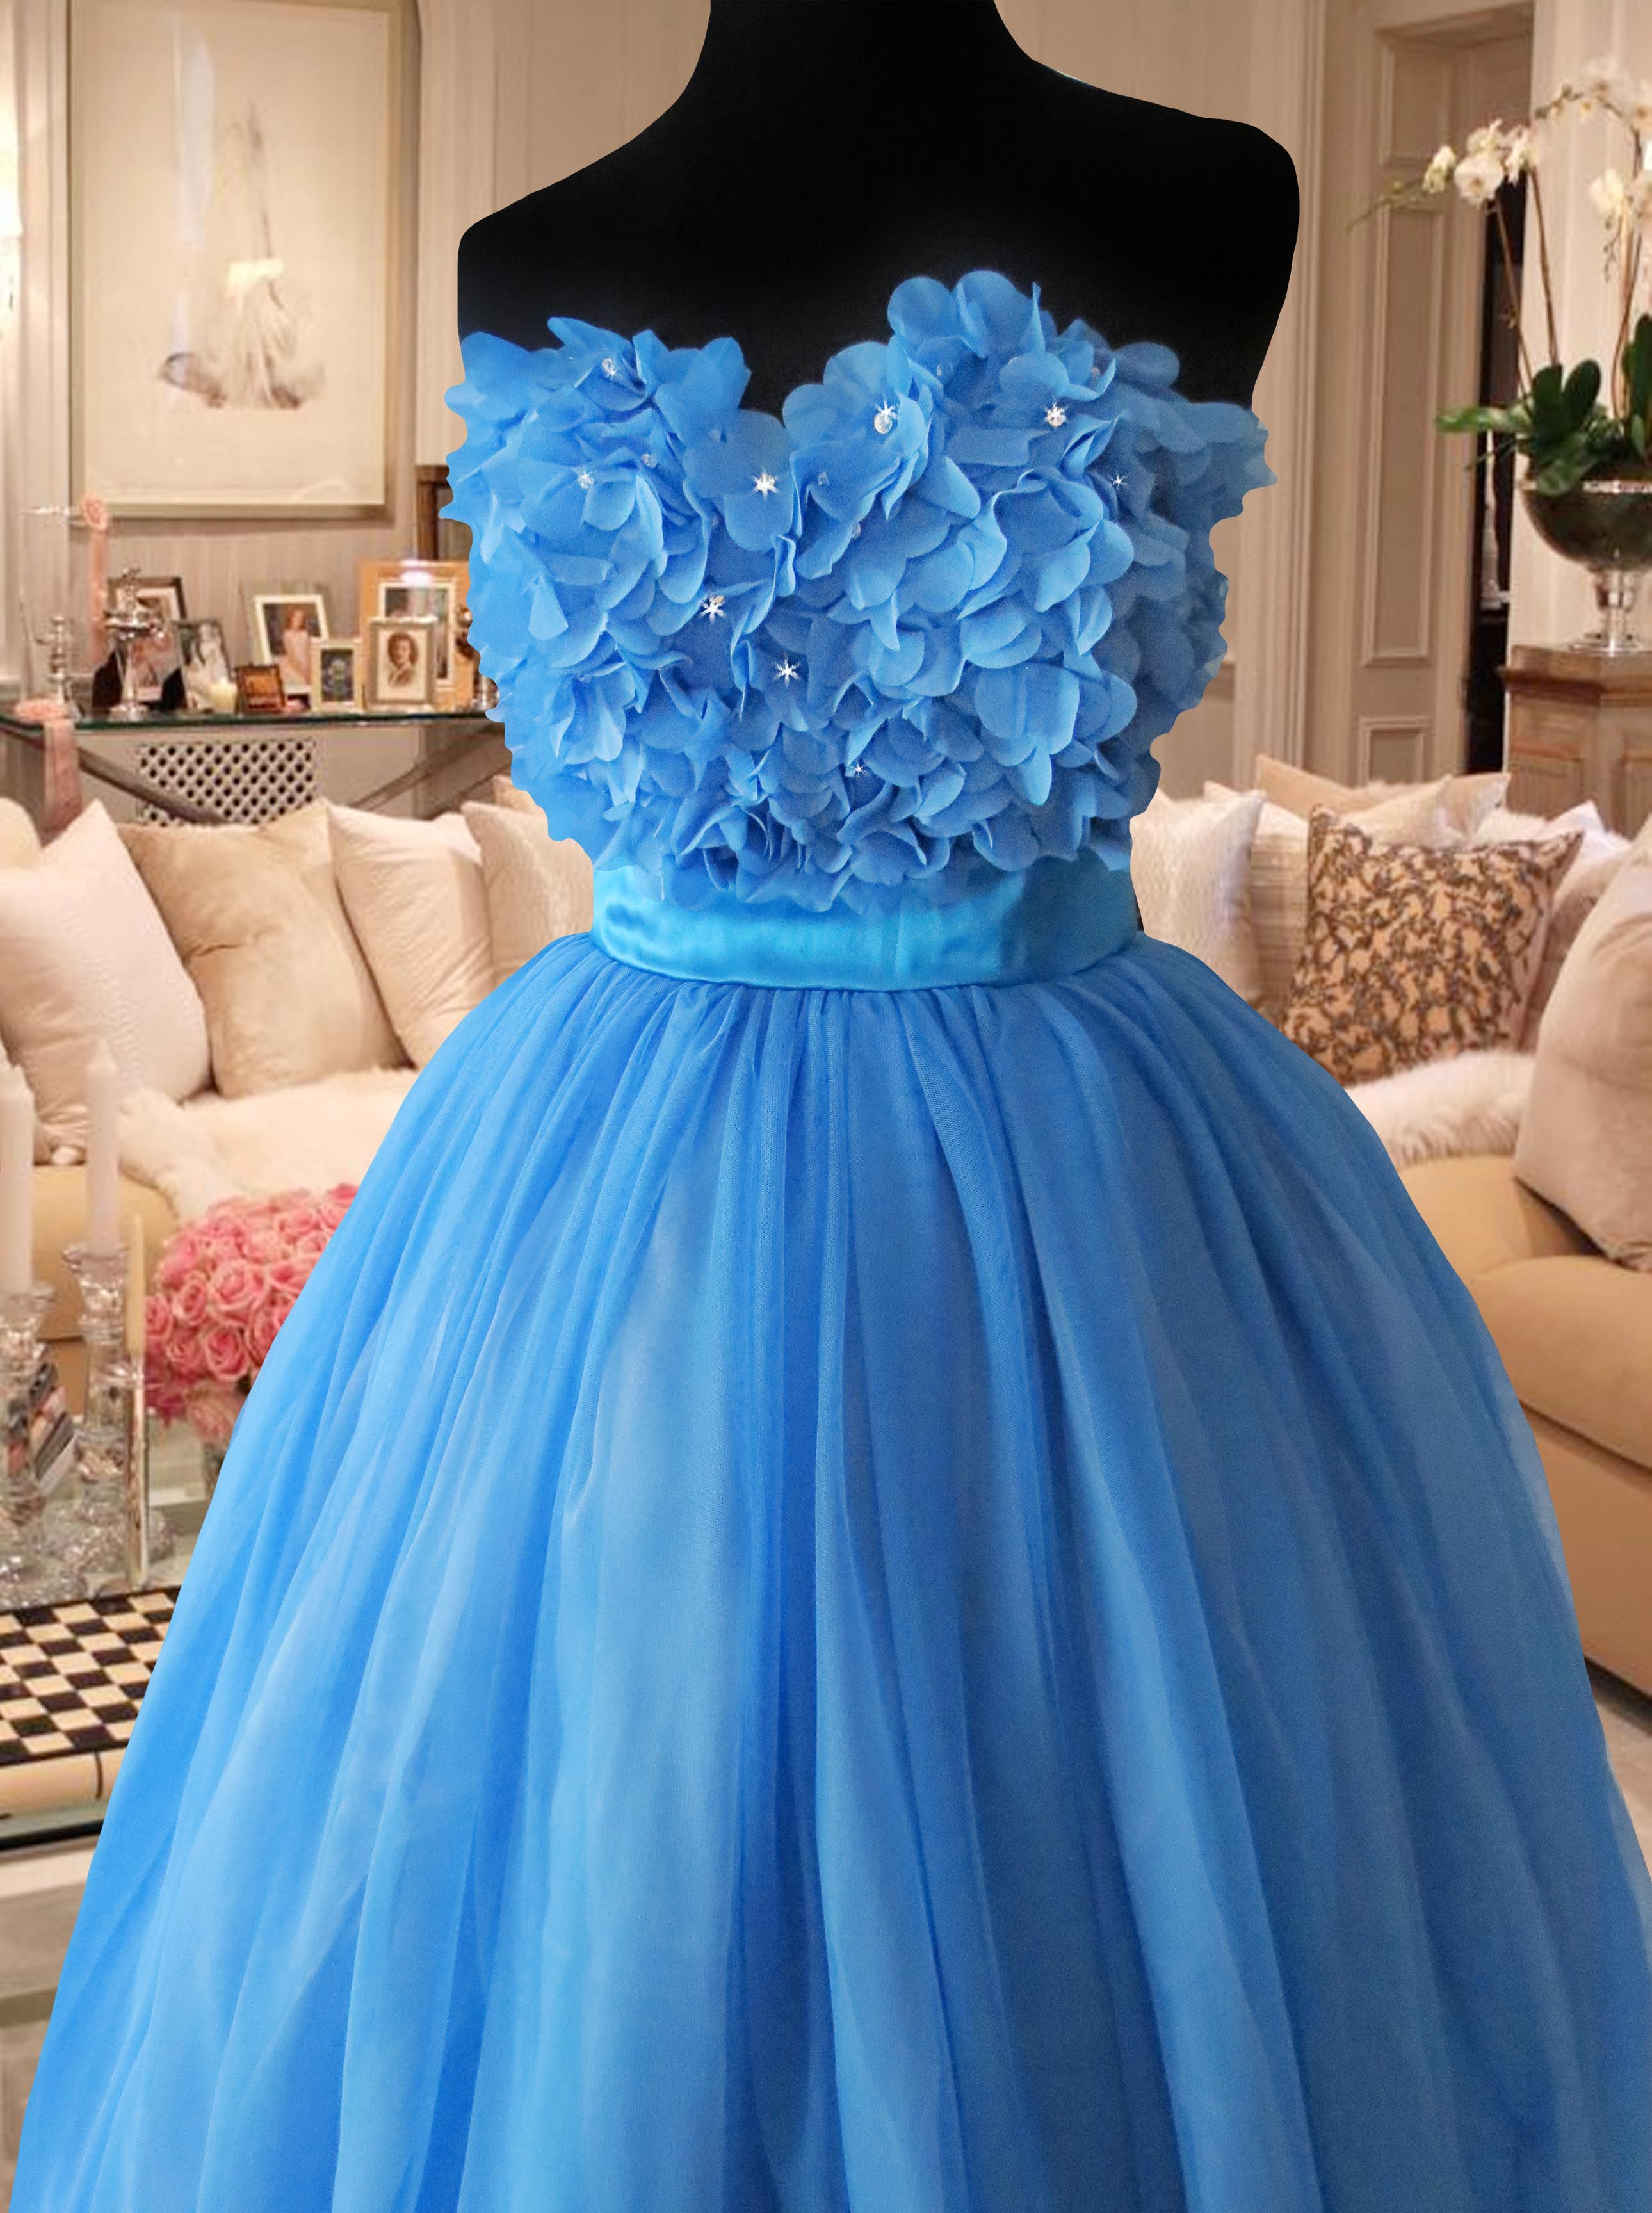 Blue ball gown for rent Php2,000. www.gownforent.com Debut, flores ...